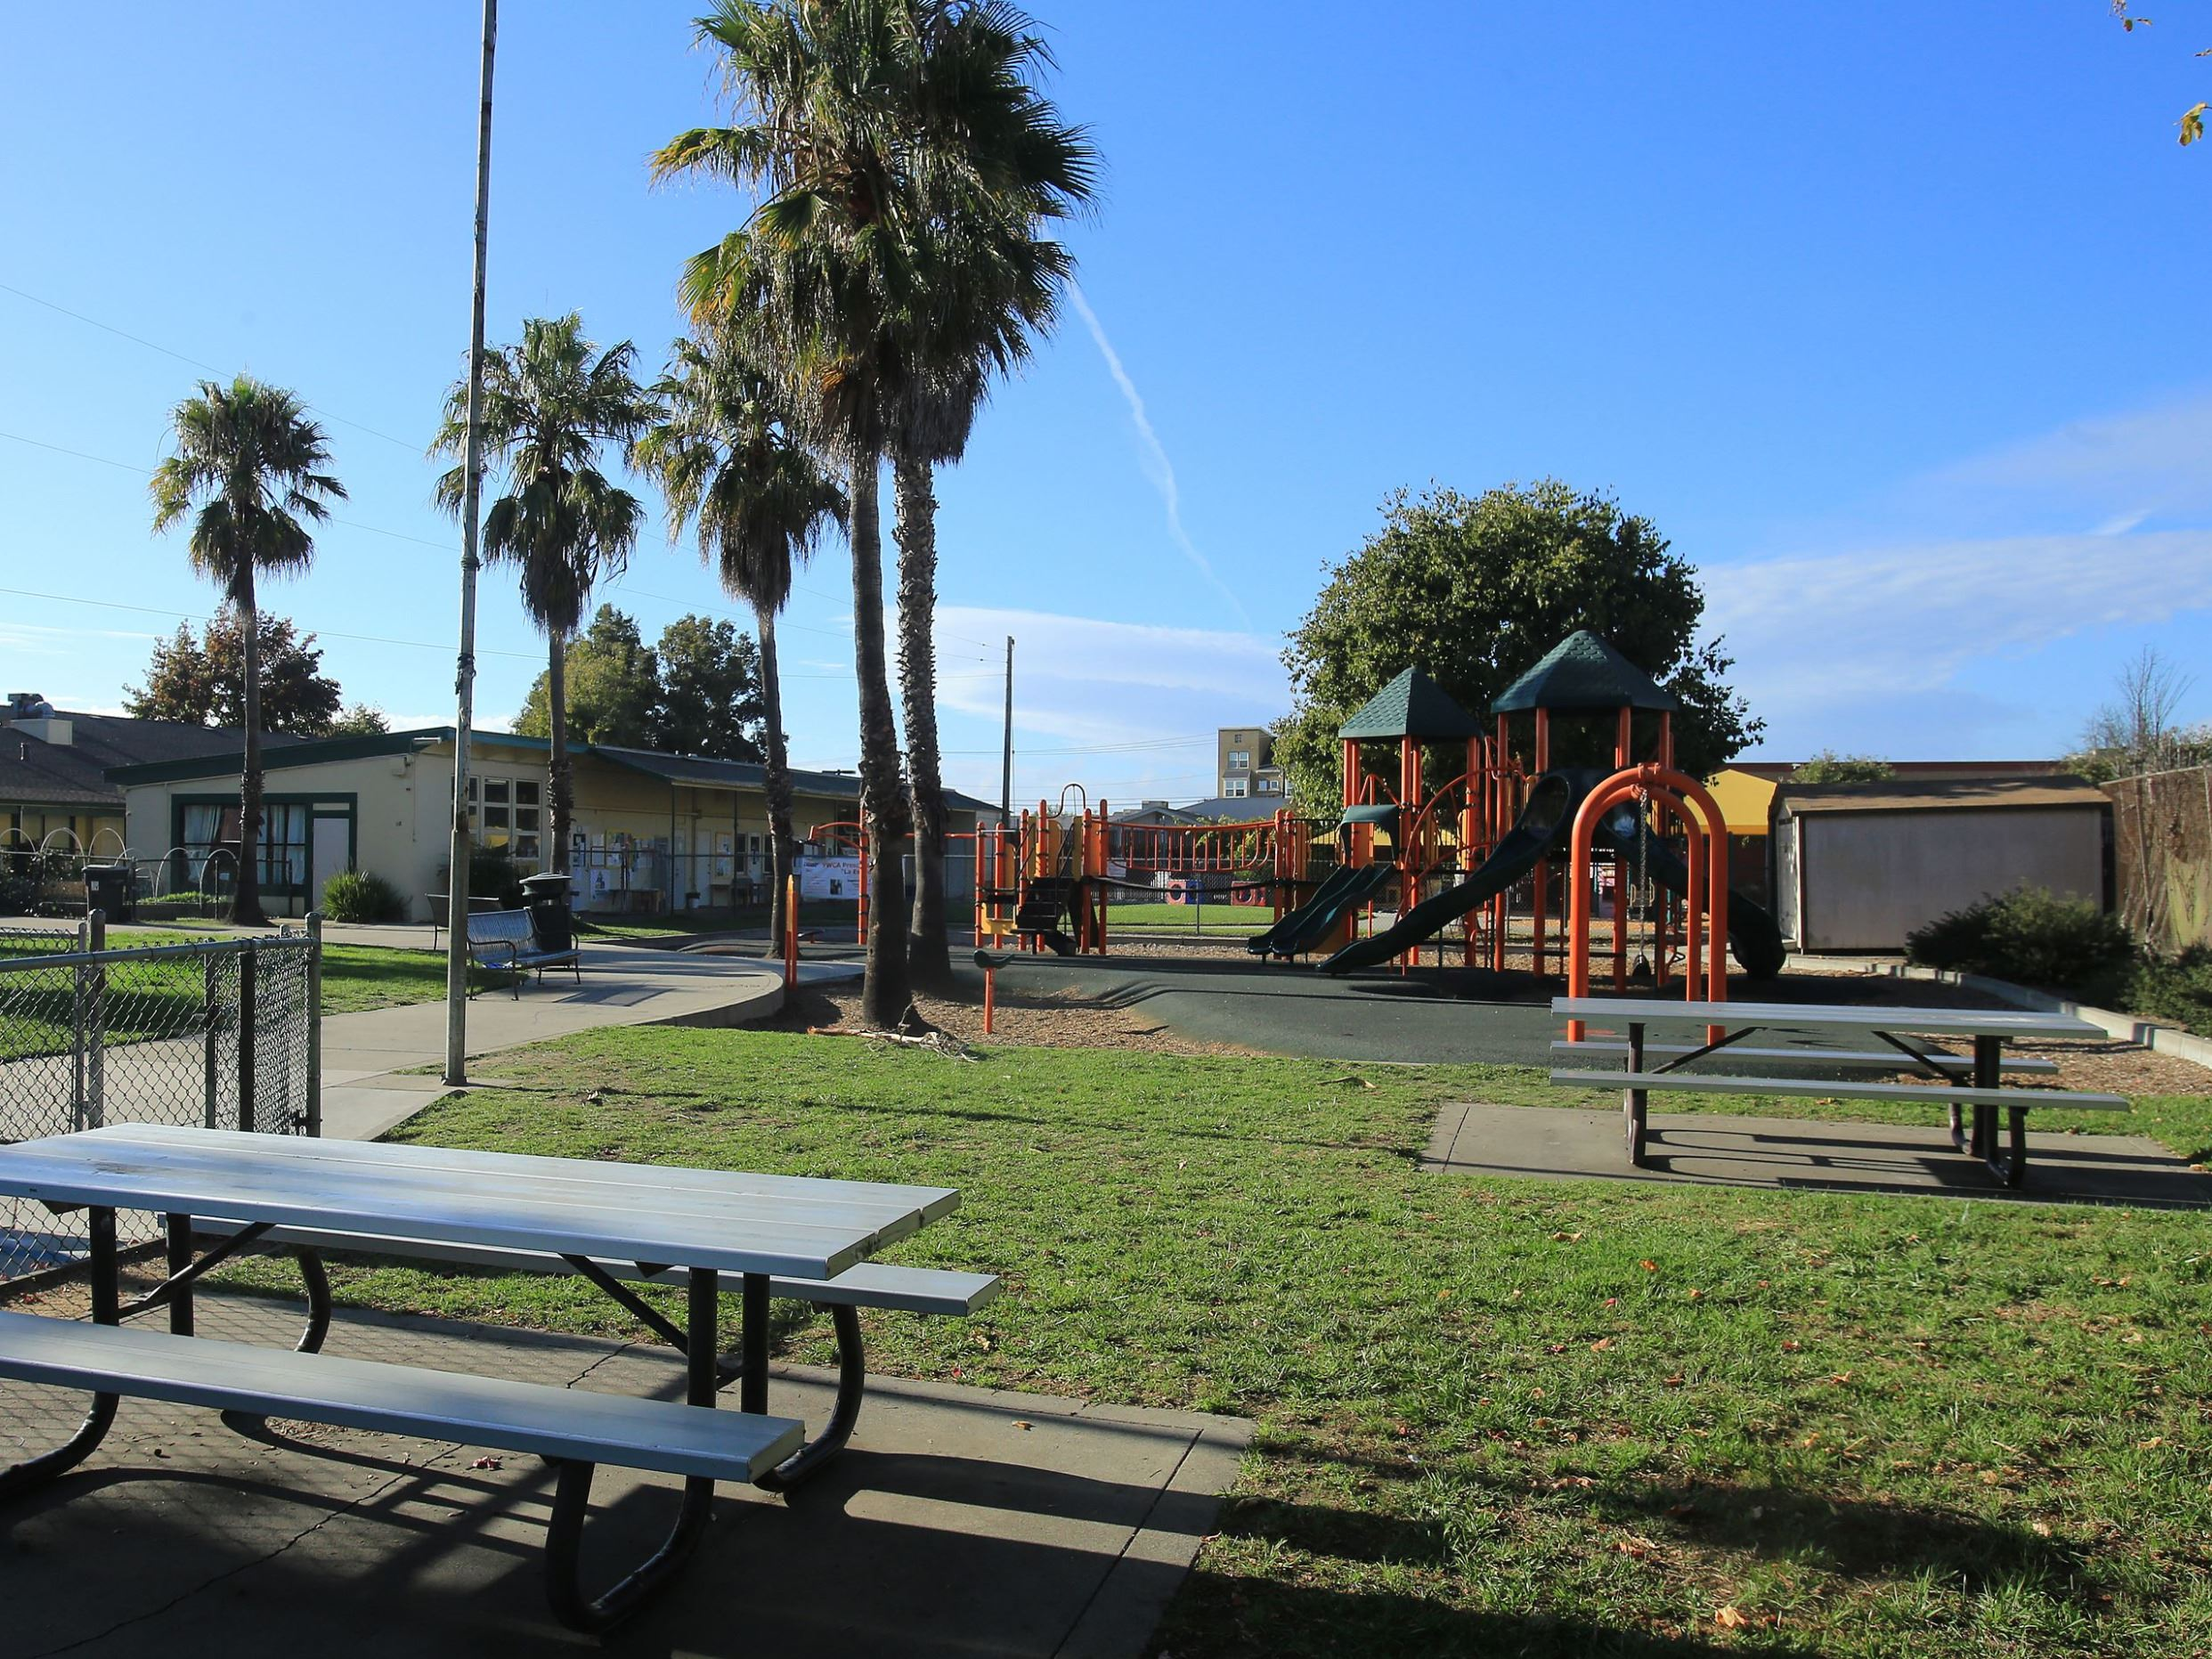 Picnic table and playground structure at Marinovich park